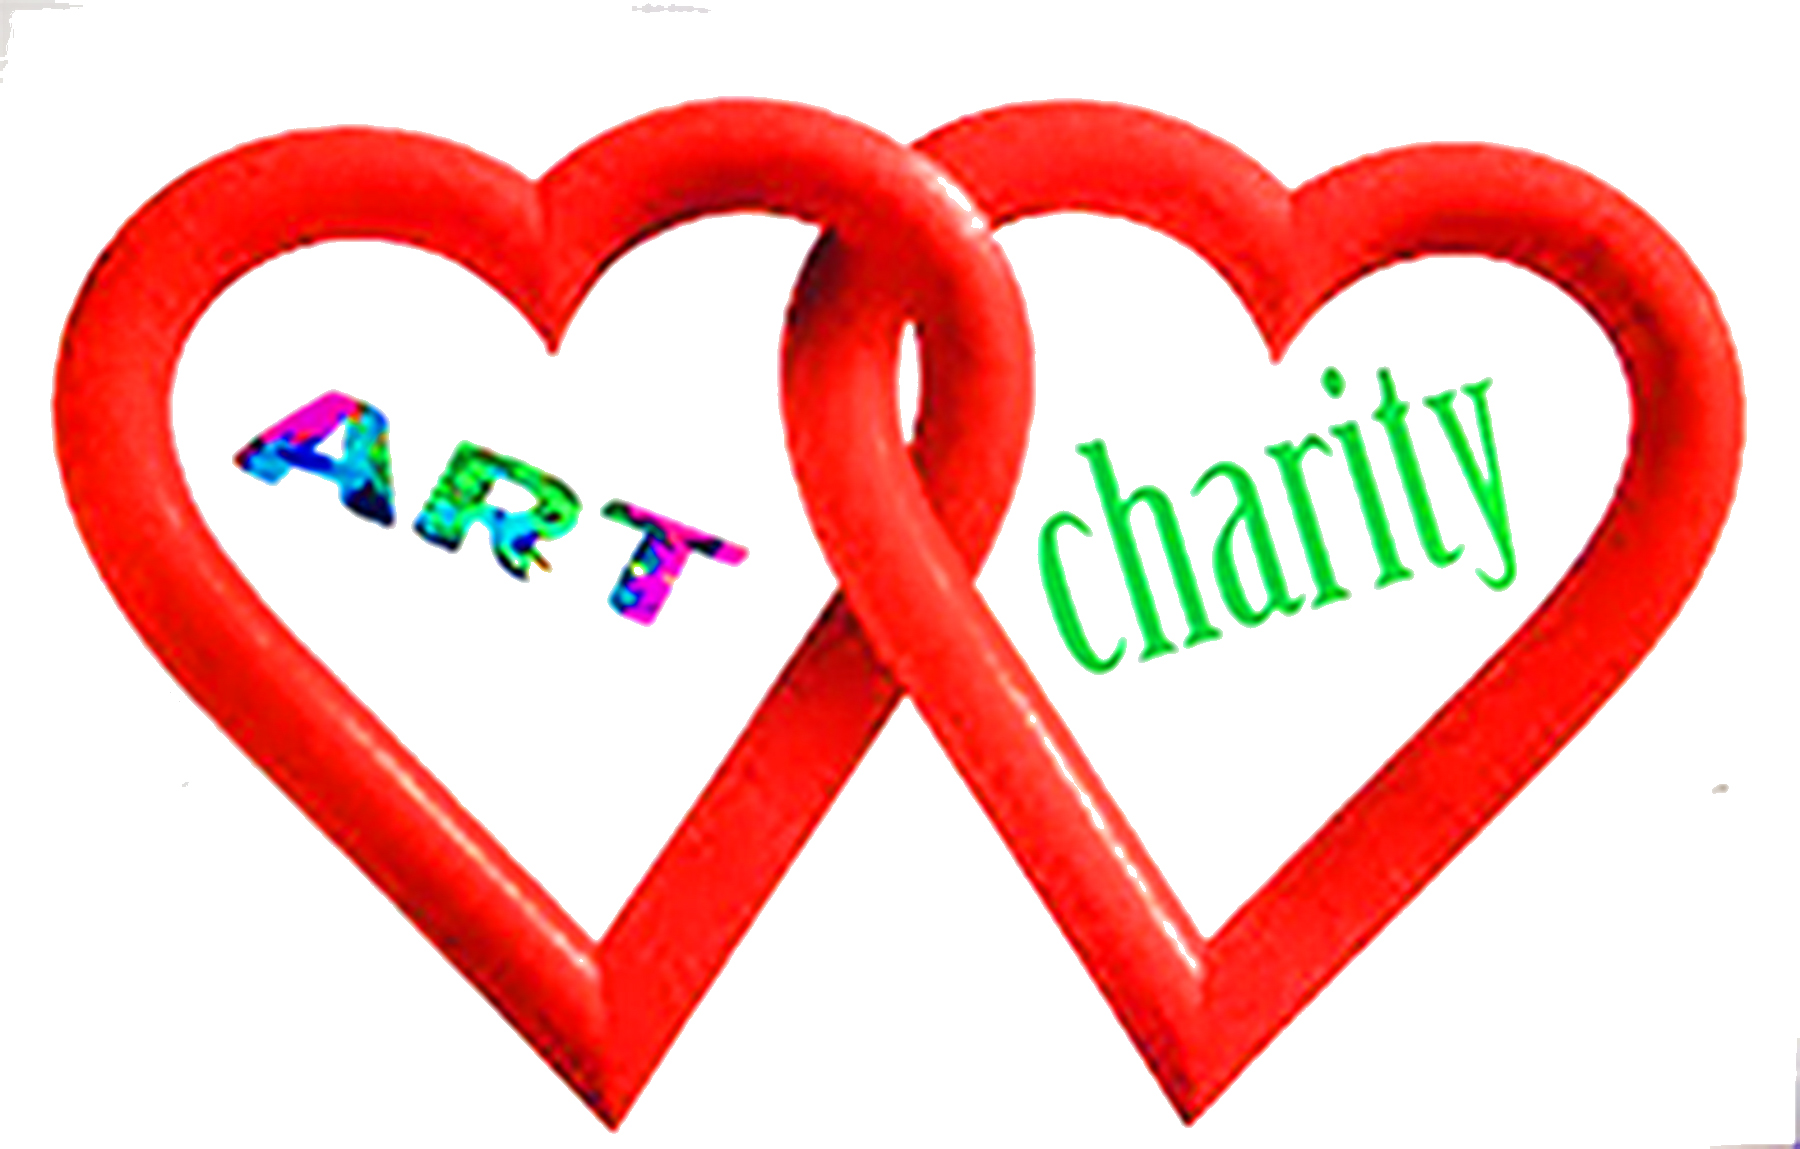 Art Love Charity